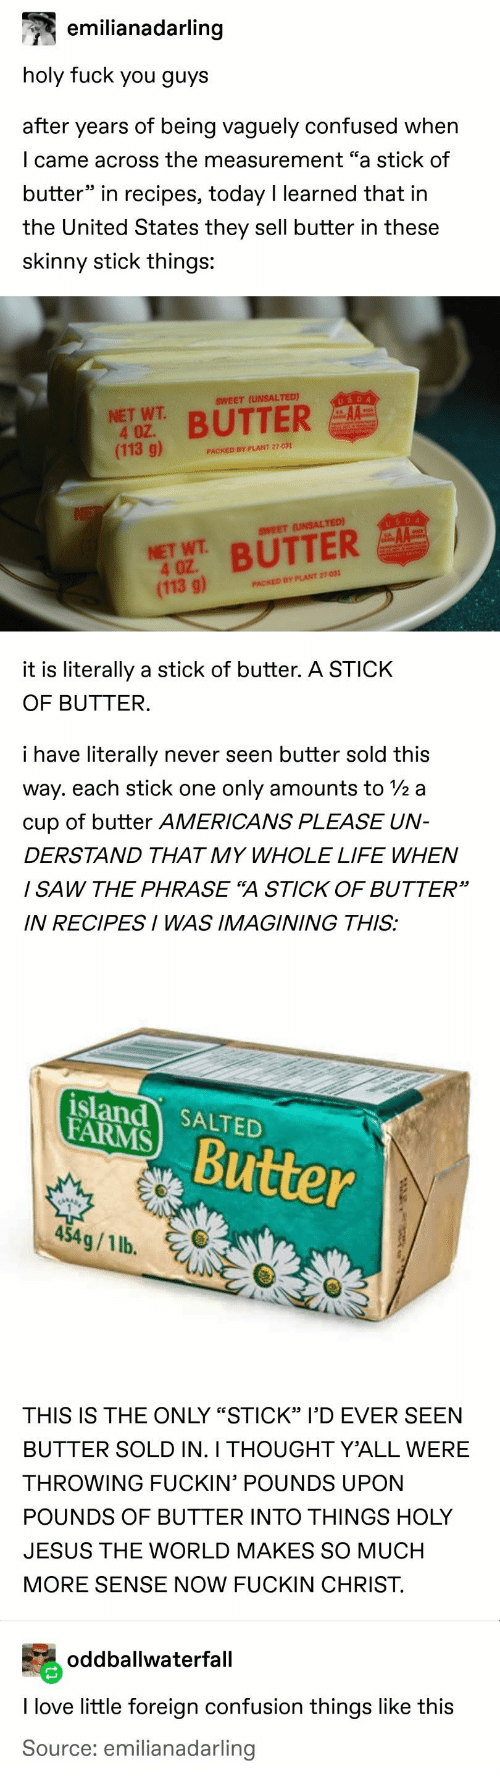 "imagining: emilianadarling  holy fuck you guys  after years of being vaguely confused when  I came across the measurement ""a stick of  butter"" in recipes, today I learned that in  the United States they sell butter in these  skinny stick things:  USDA  SWEET (UNSALTED)  NET WT  4 OZ.  (113 g)  BUTTER  PACKED BY PLANT 27-031  NE  USDA  AA  SWEET (UNSALTED)  NET WT BUTTER  4 OZ  (113 g)  PACKED BY PLANT 27-031  it is literally a stick of butter. A STICK  OF BUTTER.  i have literally  never seen butter sold this  way. each stick one  only amounts to 2 a  cup of butter AMERICANS PLEASE UN-  DERSTAND THAT MY WHOLE LIFE WHEN  I SAW THE PHRASE ""A STICK OF BUTTER""  IN RECIPESI WAS IMAGINING THIS:  island SALTED  FARMS  Butter  454g/1 lb.  THIS IS THE ONLY ""STICK"" I'D EVER SEEN  BUTTER SOLD IN. I THOUGHT Y'ALL WERE  THROWING FUCKIN' POUNDS UPON  POUNDS OF BUTTER INTO THINGS HOLY  JESUS THE WORLD MAKES SO MUCH  MORE SENSE NOW FUCKIN CHRIST  oddballwaterfall  I love little foreign confusion things like this  Source: emilianadarling"